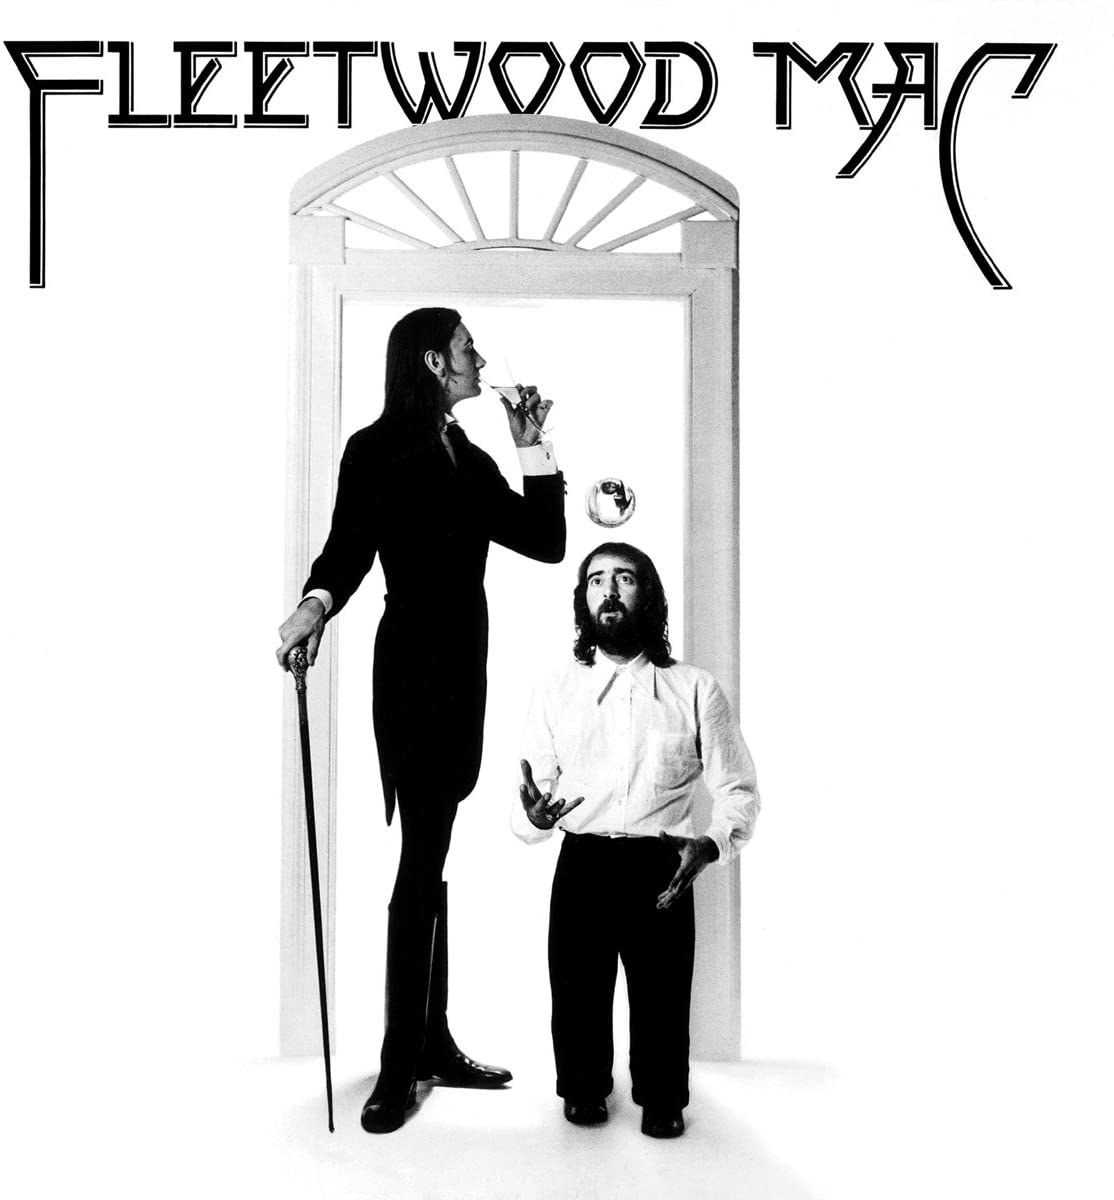 album cover of Fleetwood Mac showing a tall and short man standing in a doorframe